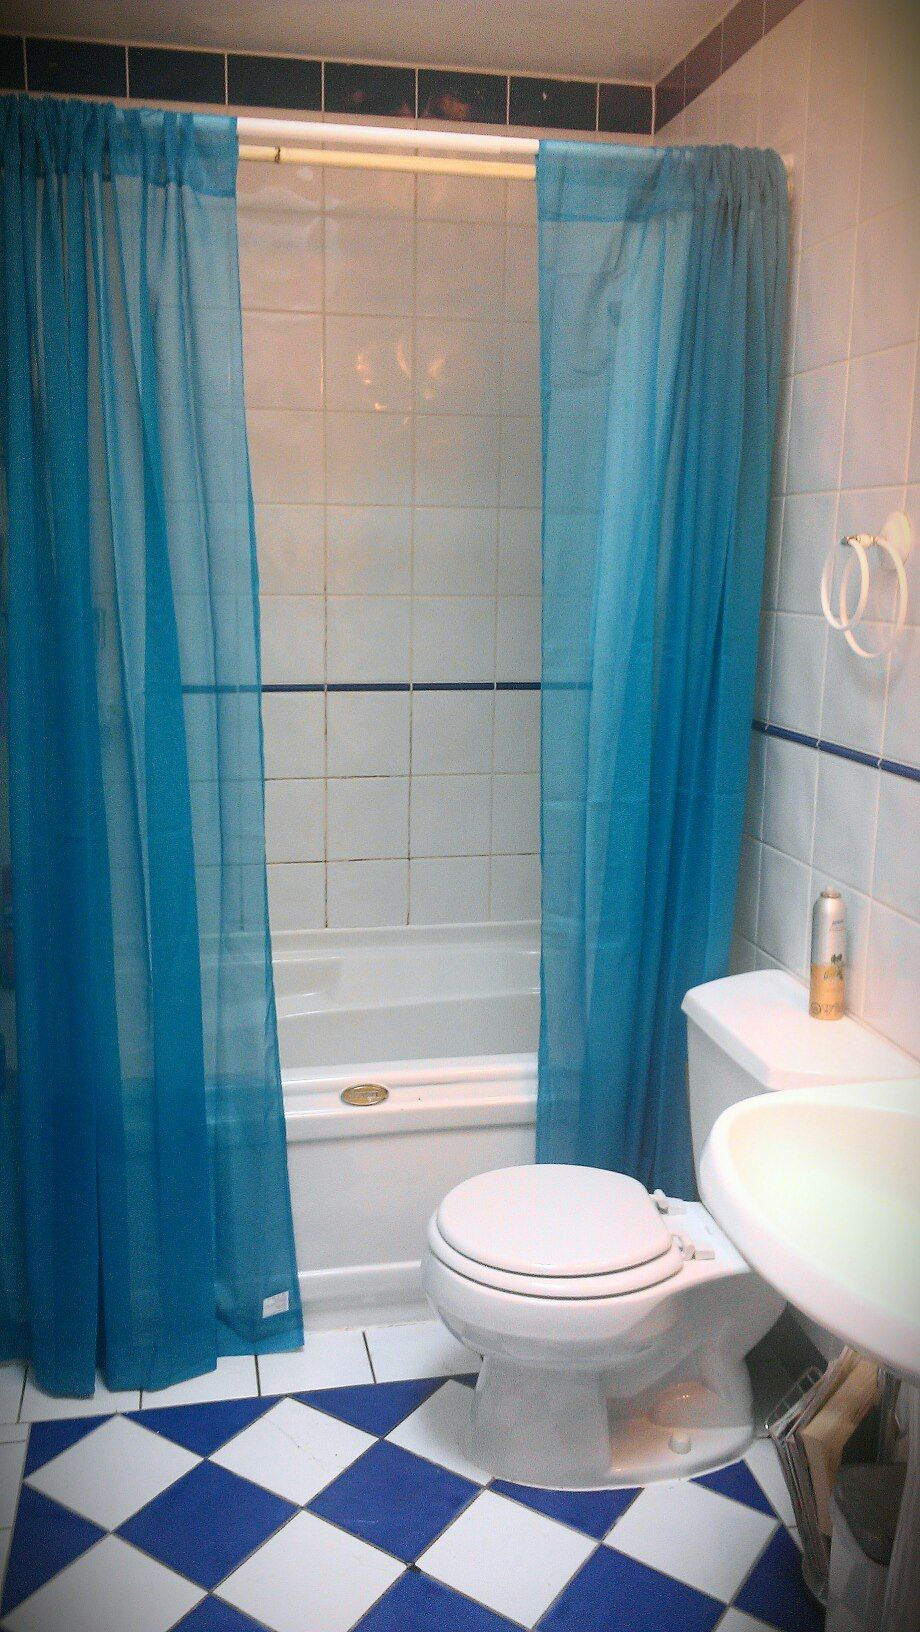 Taking a tip from Pinterest for small bathrooms: Instead of a shower ...